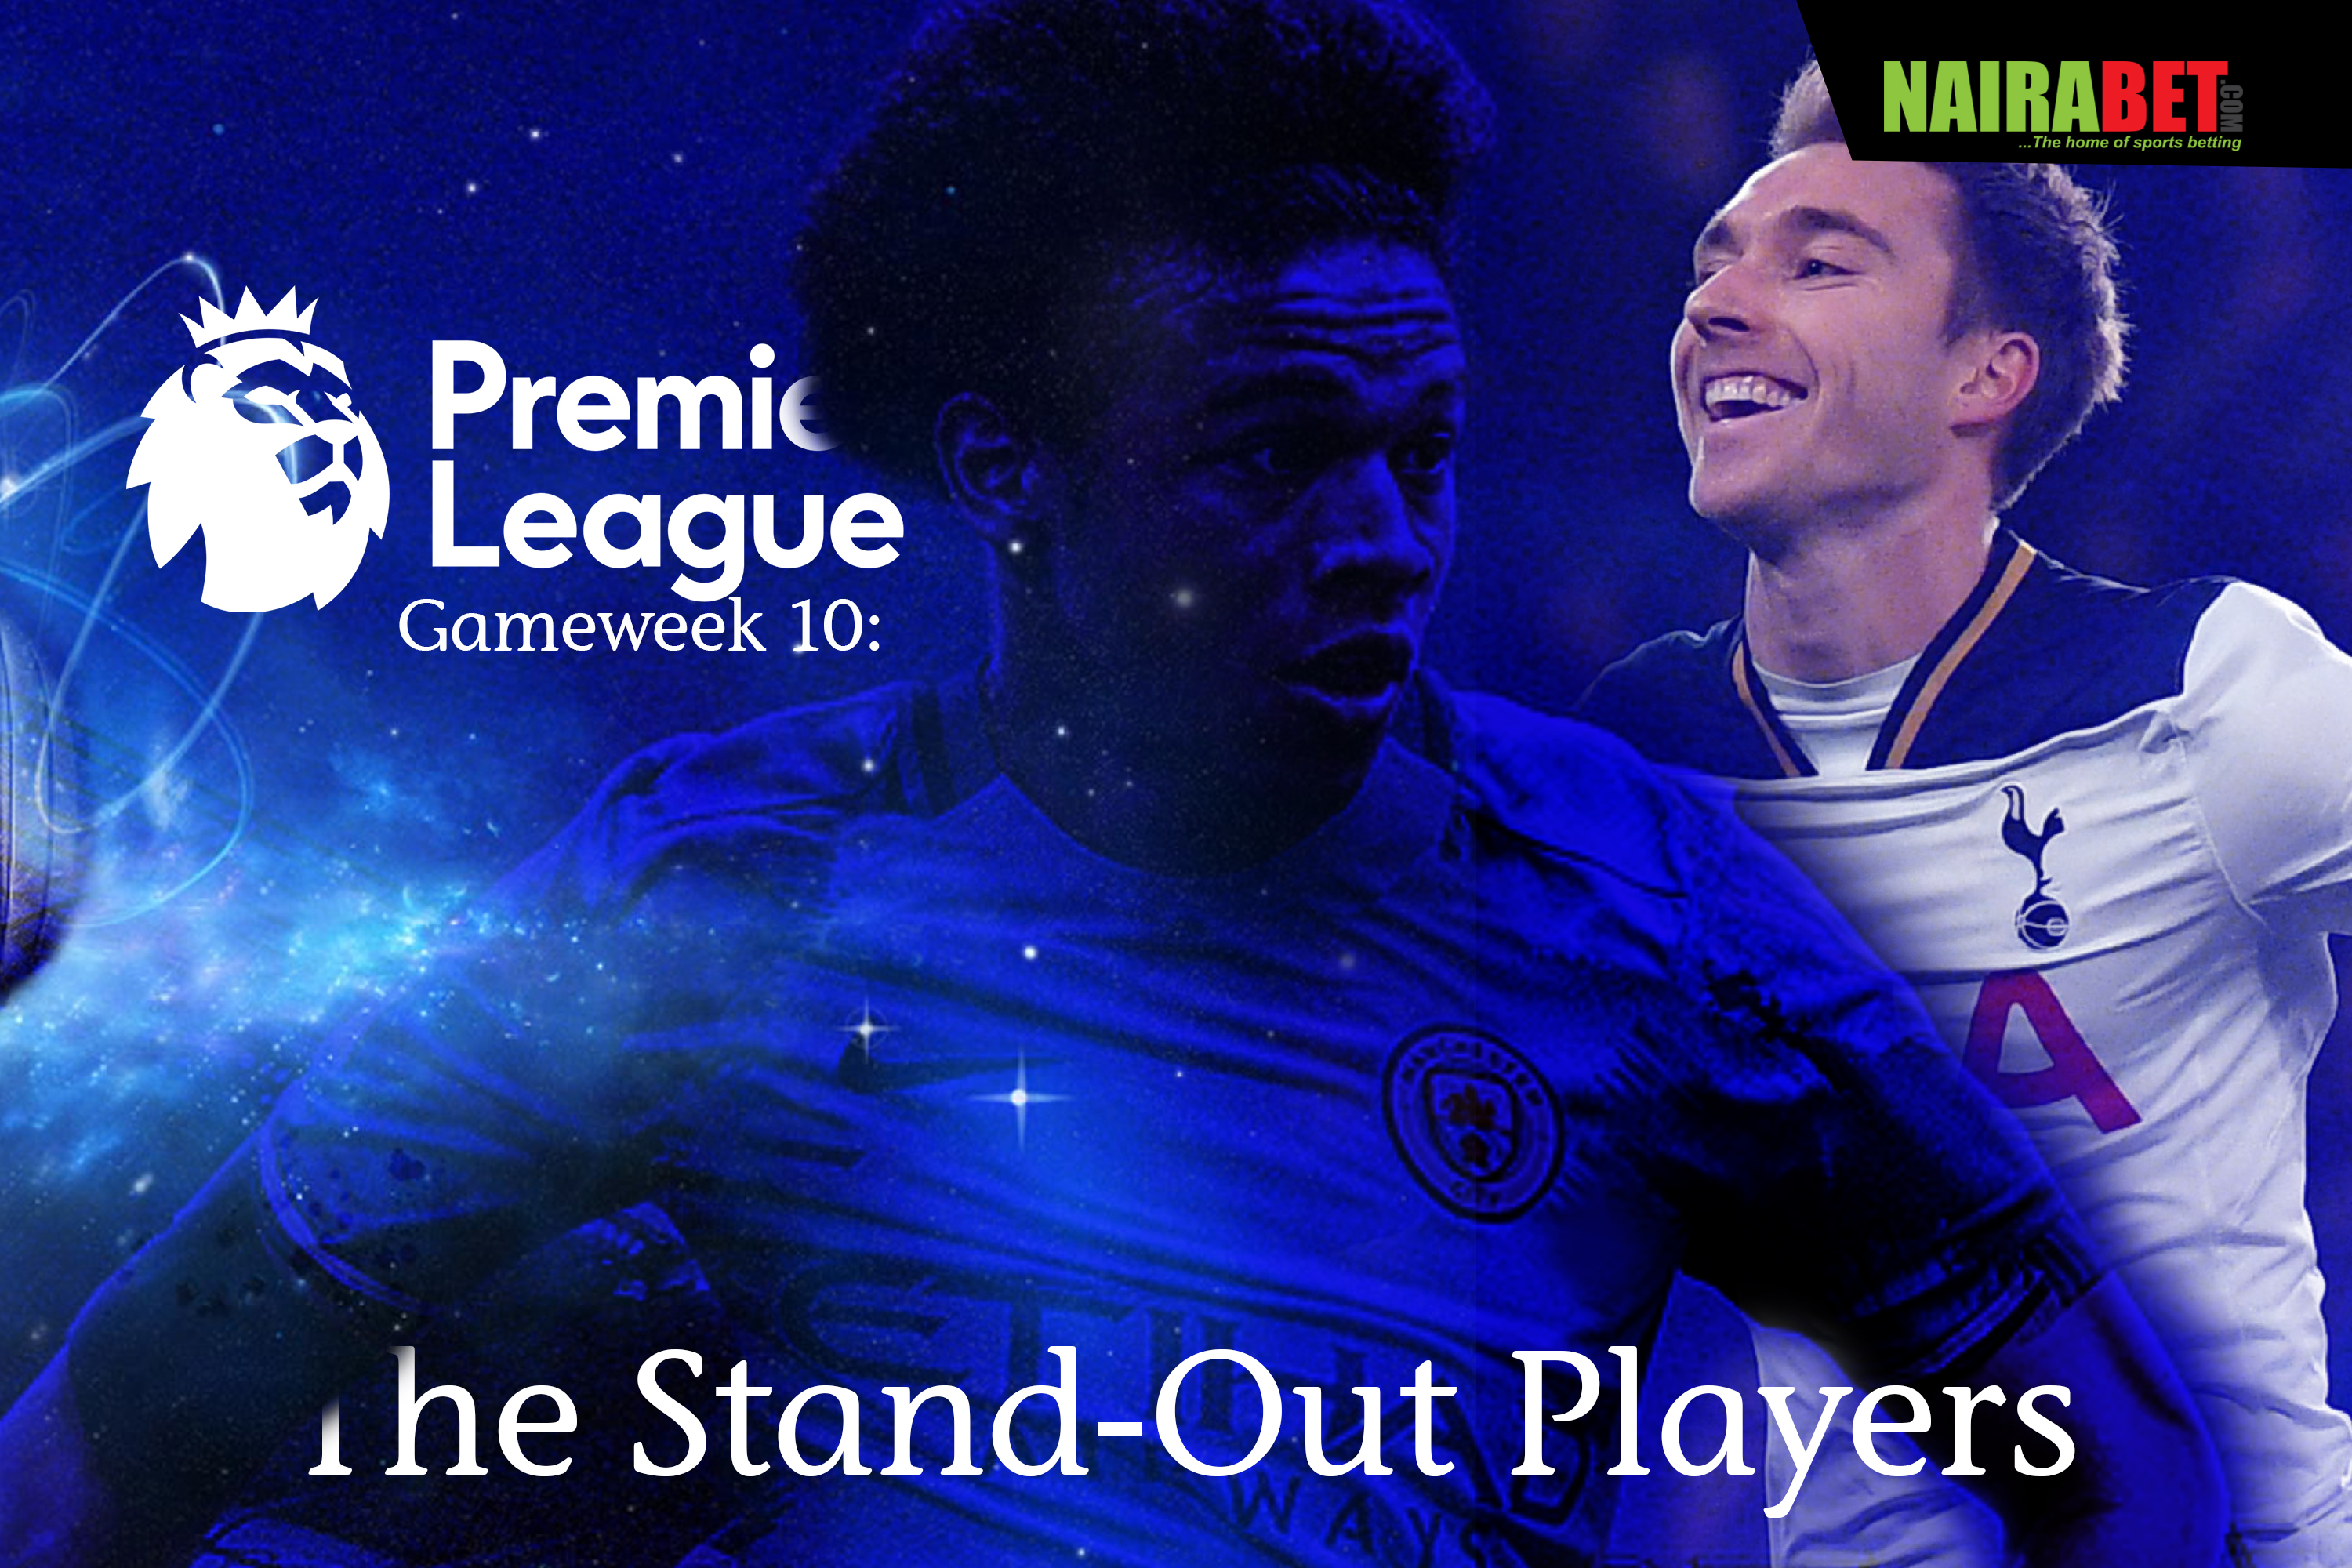 PL standout players